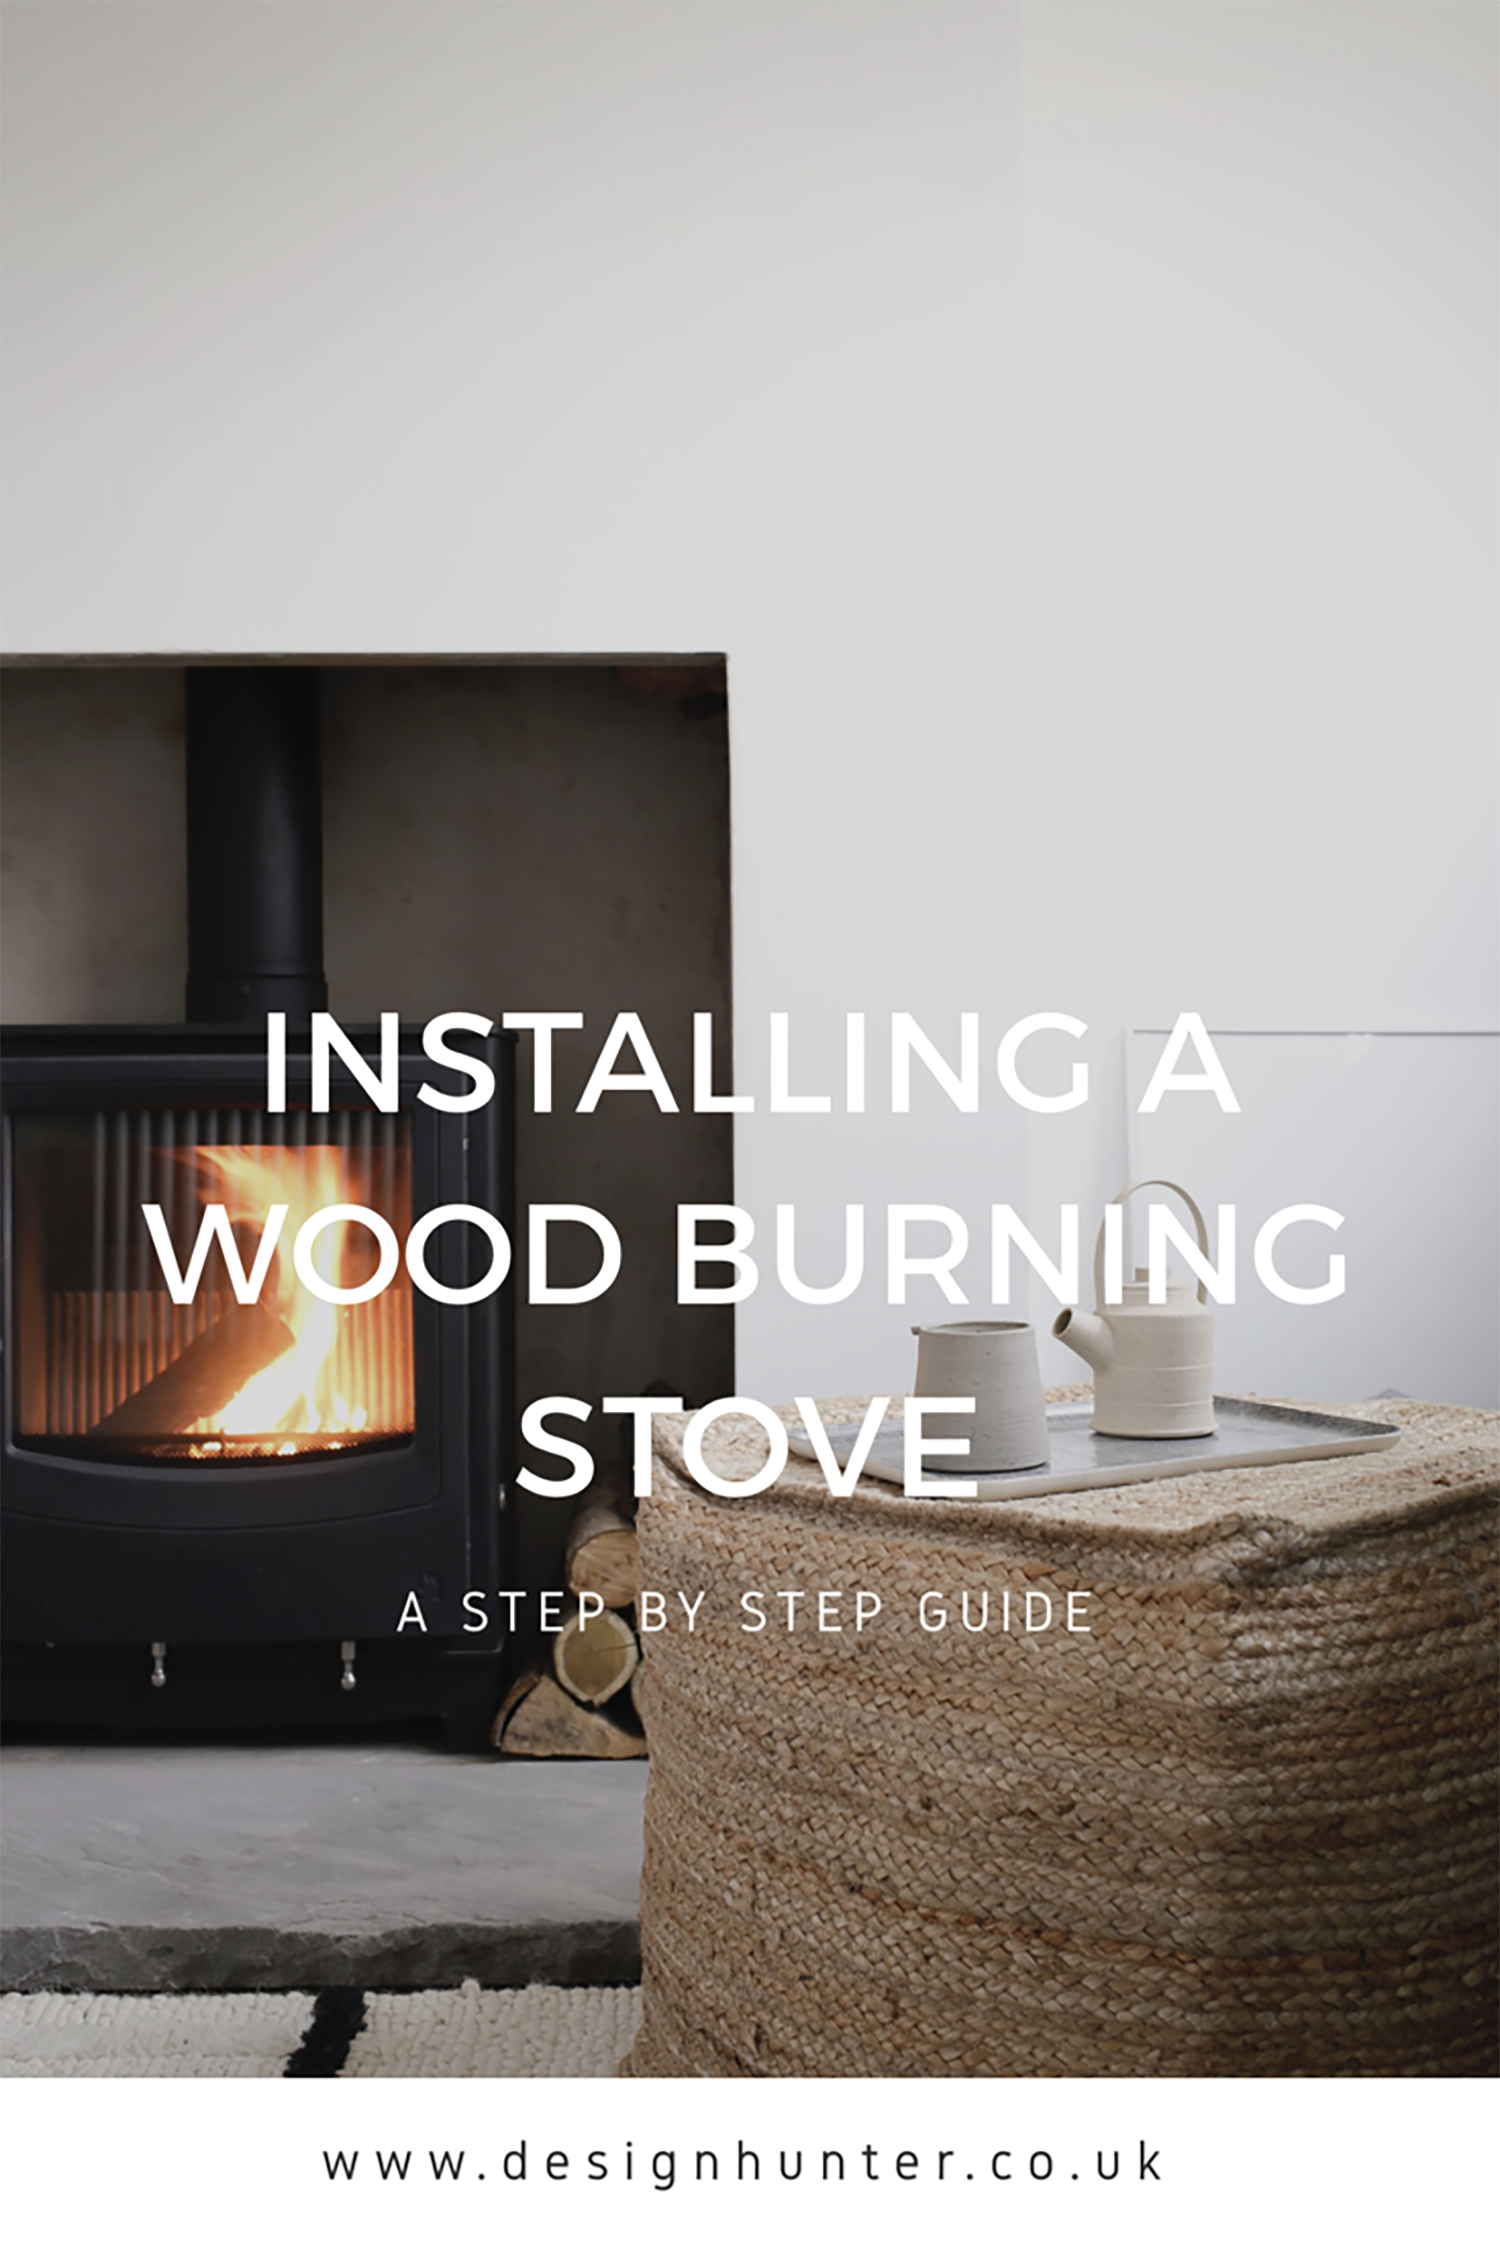 Installing a wood burning stove - a step by step guide.PNG